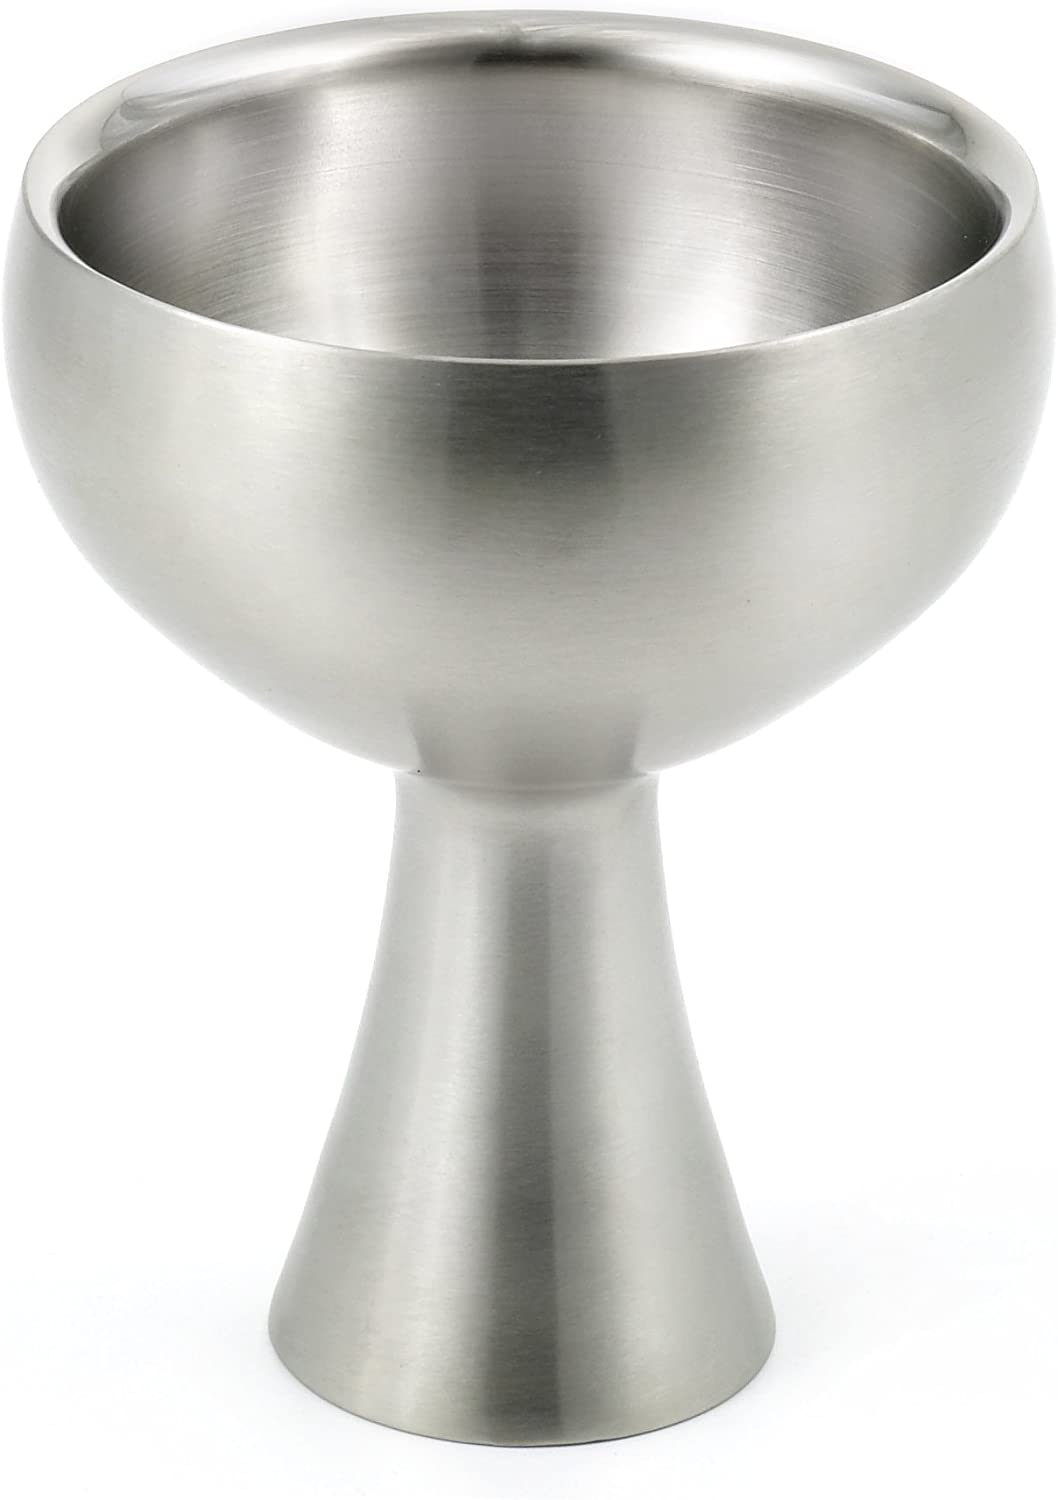 StainlessLUX 75557 Stainless Steel Double-walled Serving Bowl, Dia. 4.5 Inches x Height 5.6 Inches, Volume 1.25 Cup